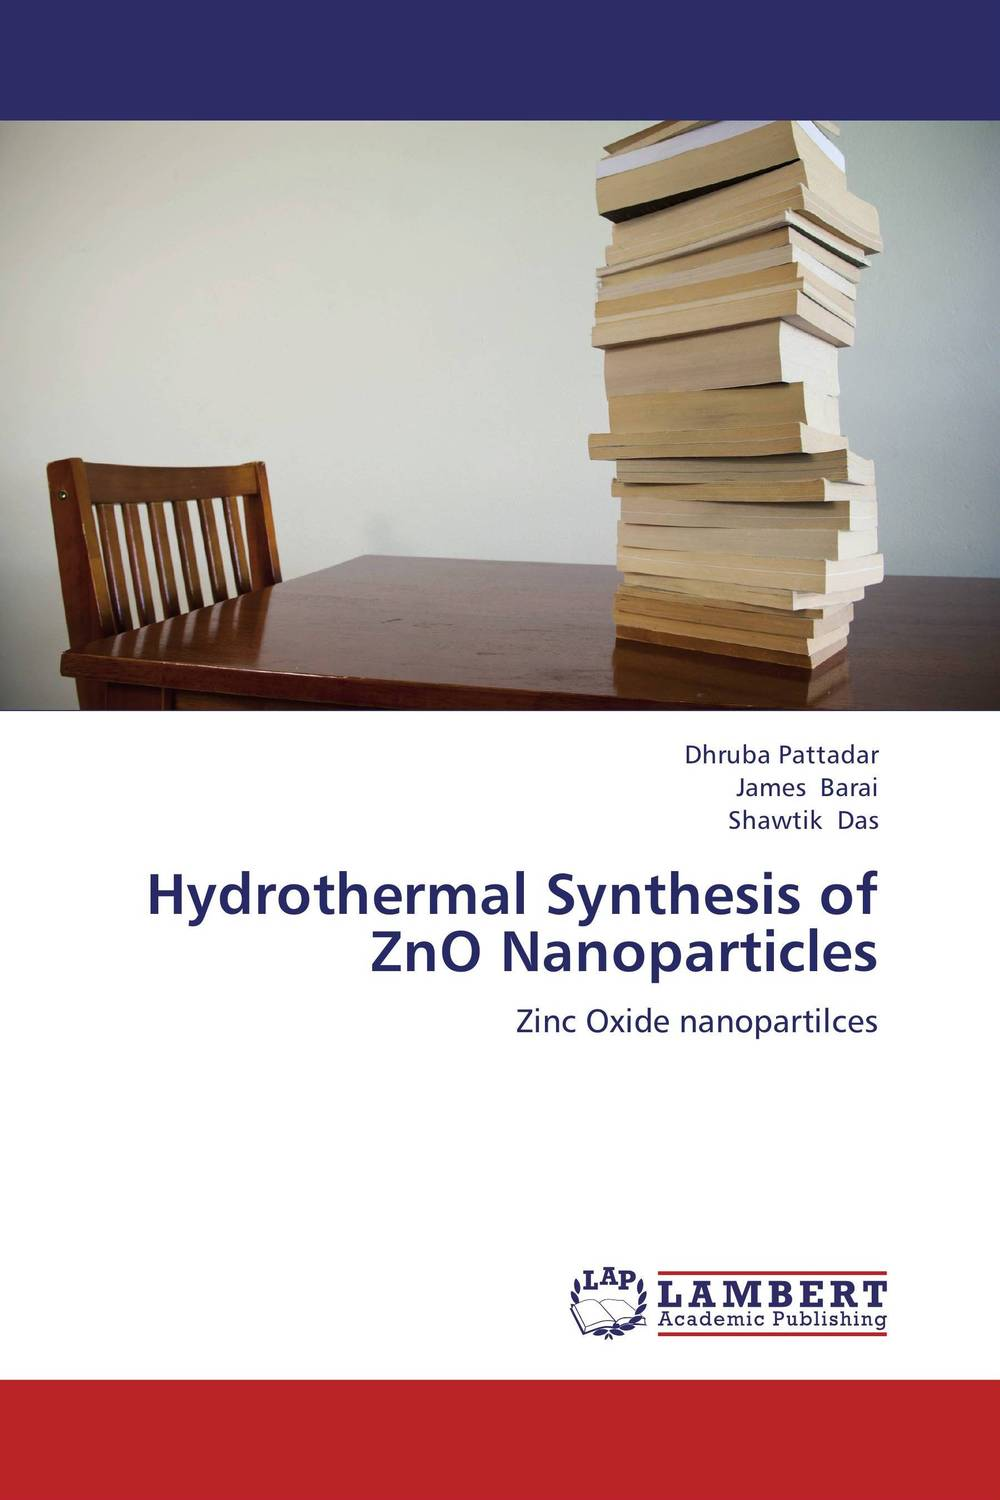 Hydrothermal Synthesis of ZnO Nanoparticles hydrothermal autoclave reactor with teflon chamber hydrothermal synthesis 250ml